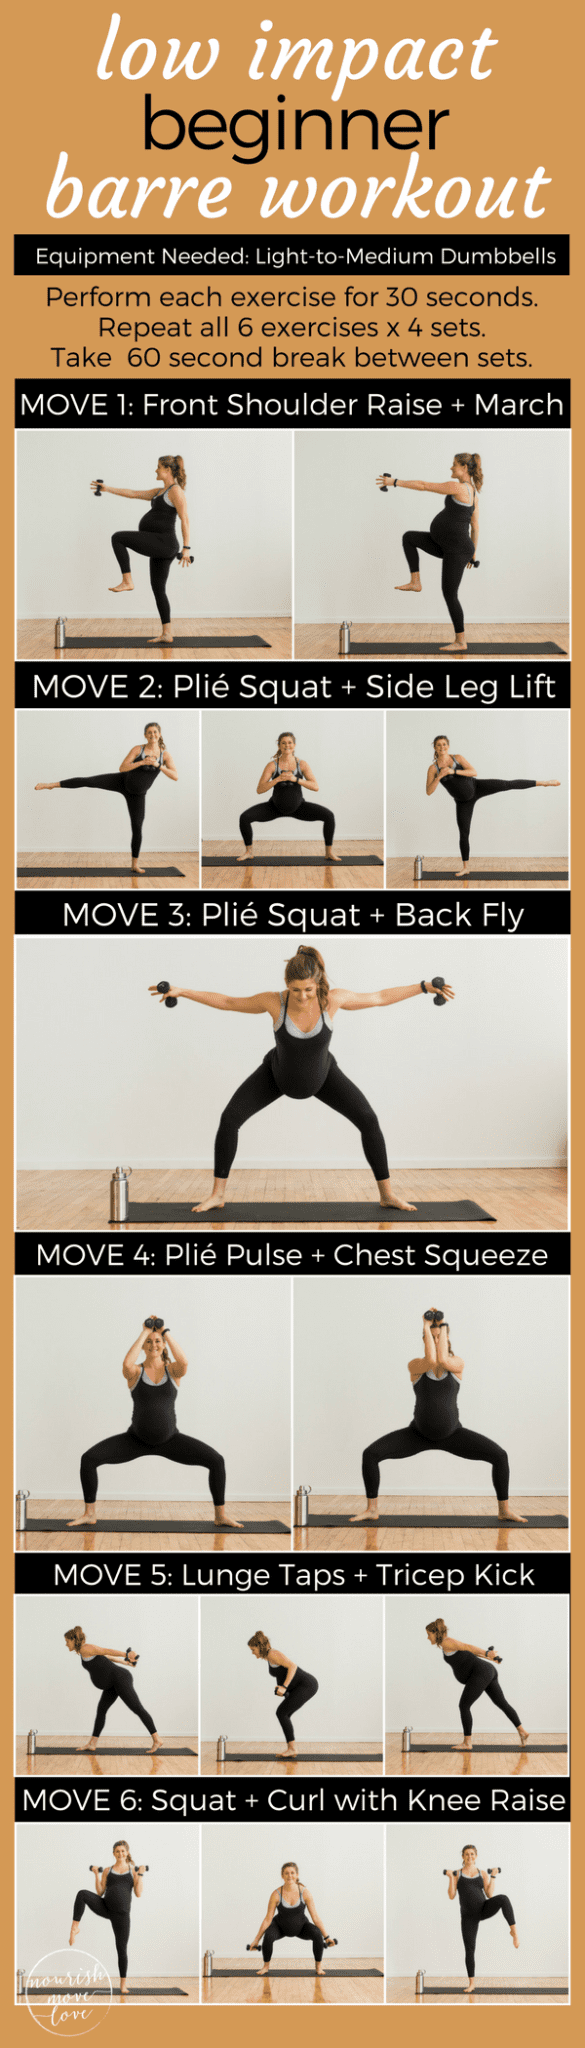 Low Impact Beginner Barre Workout | www.nourishmovelove.com